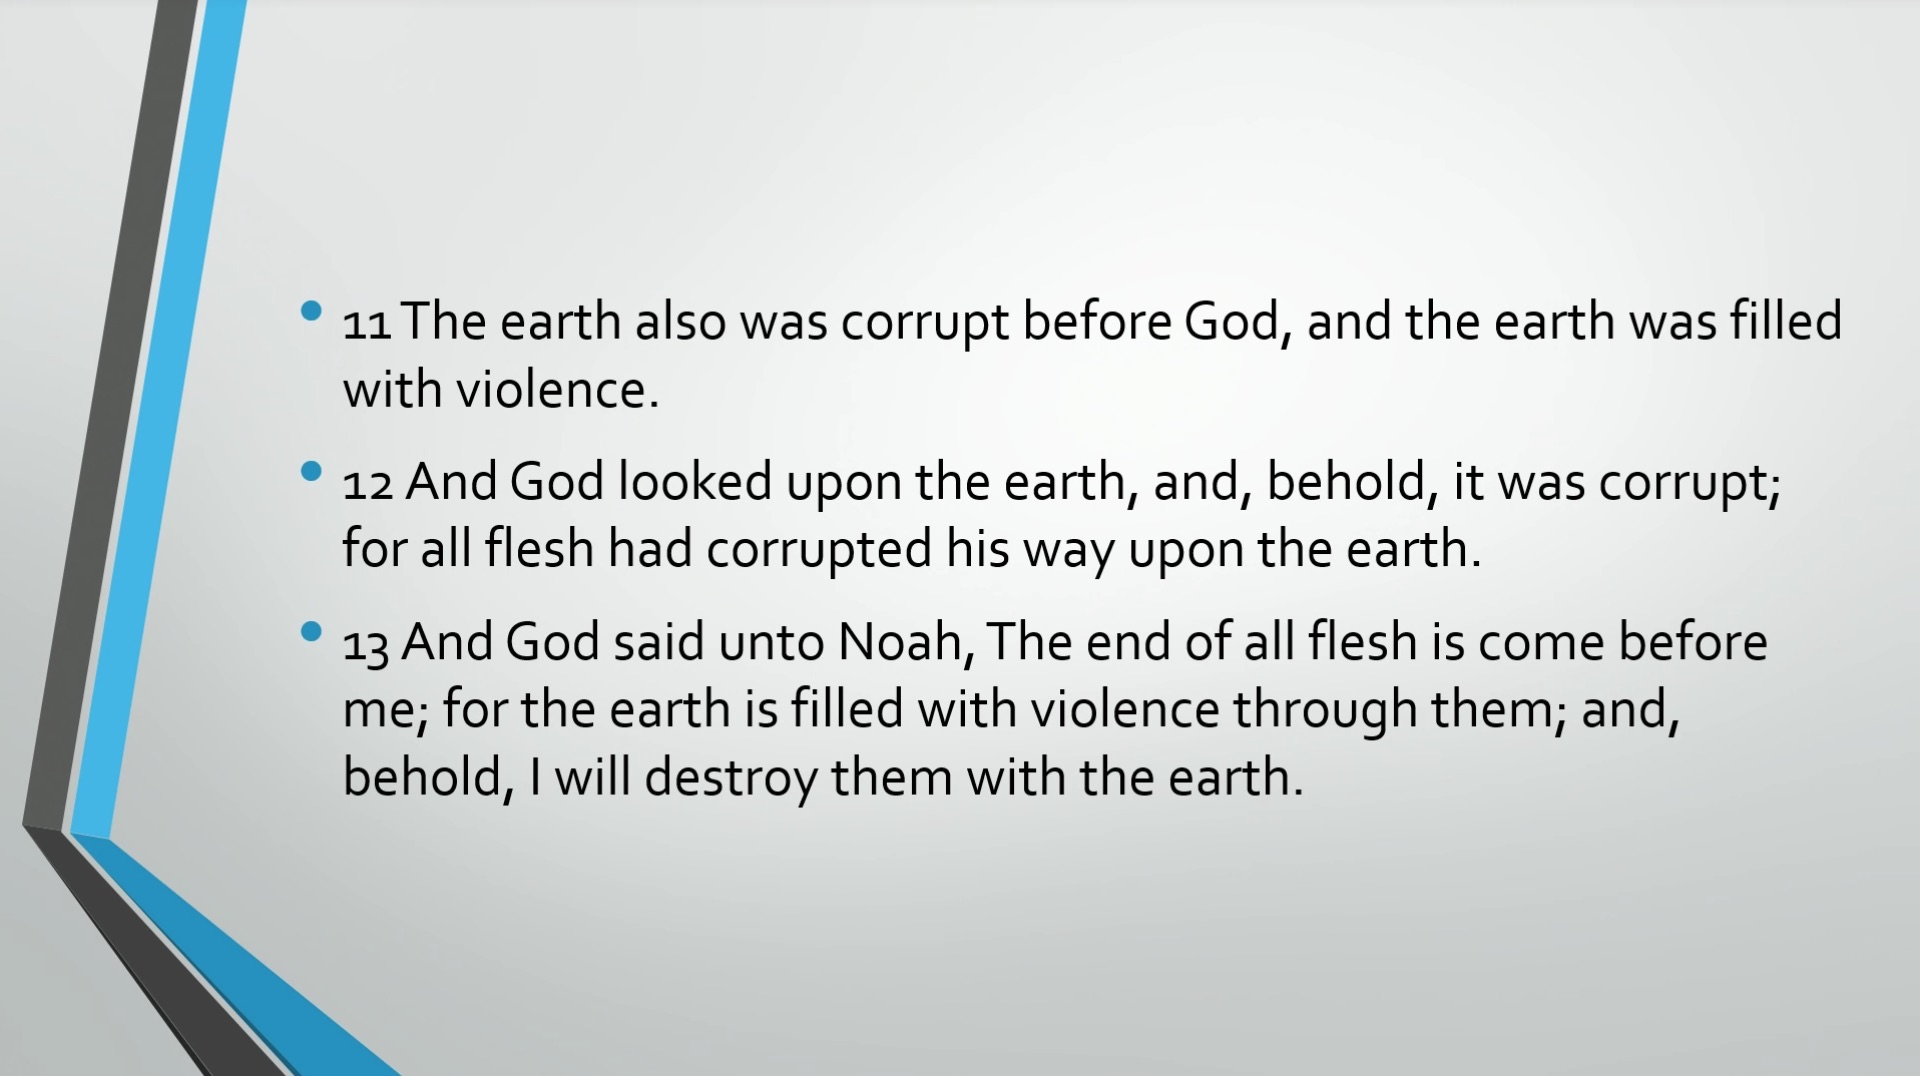 Biblical Series VII: Walking with God: Noah and the Flood